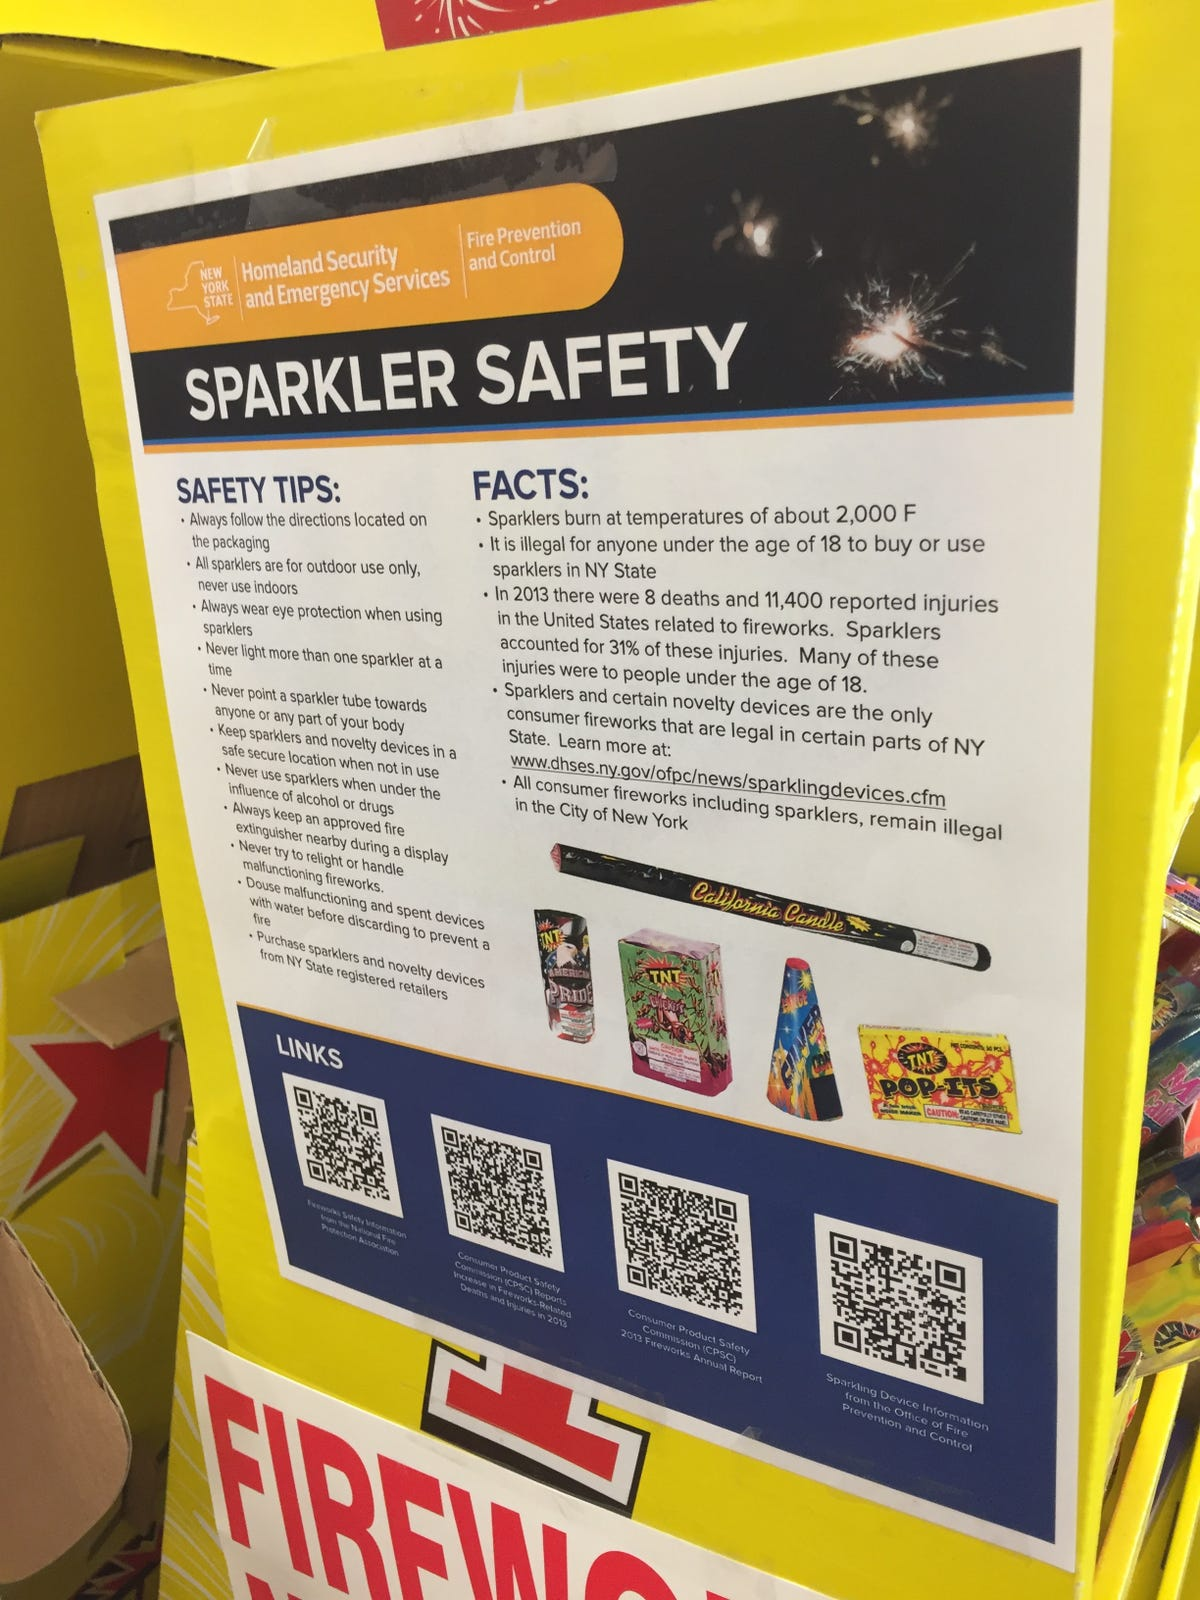 Where you can buy fireworks legally in NY